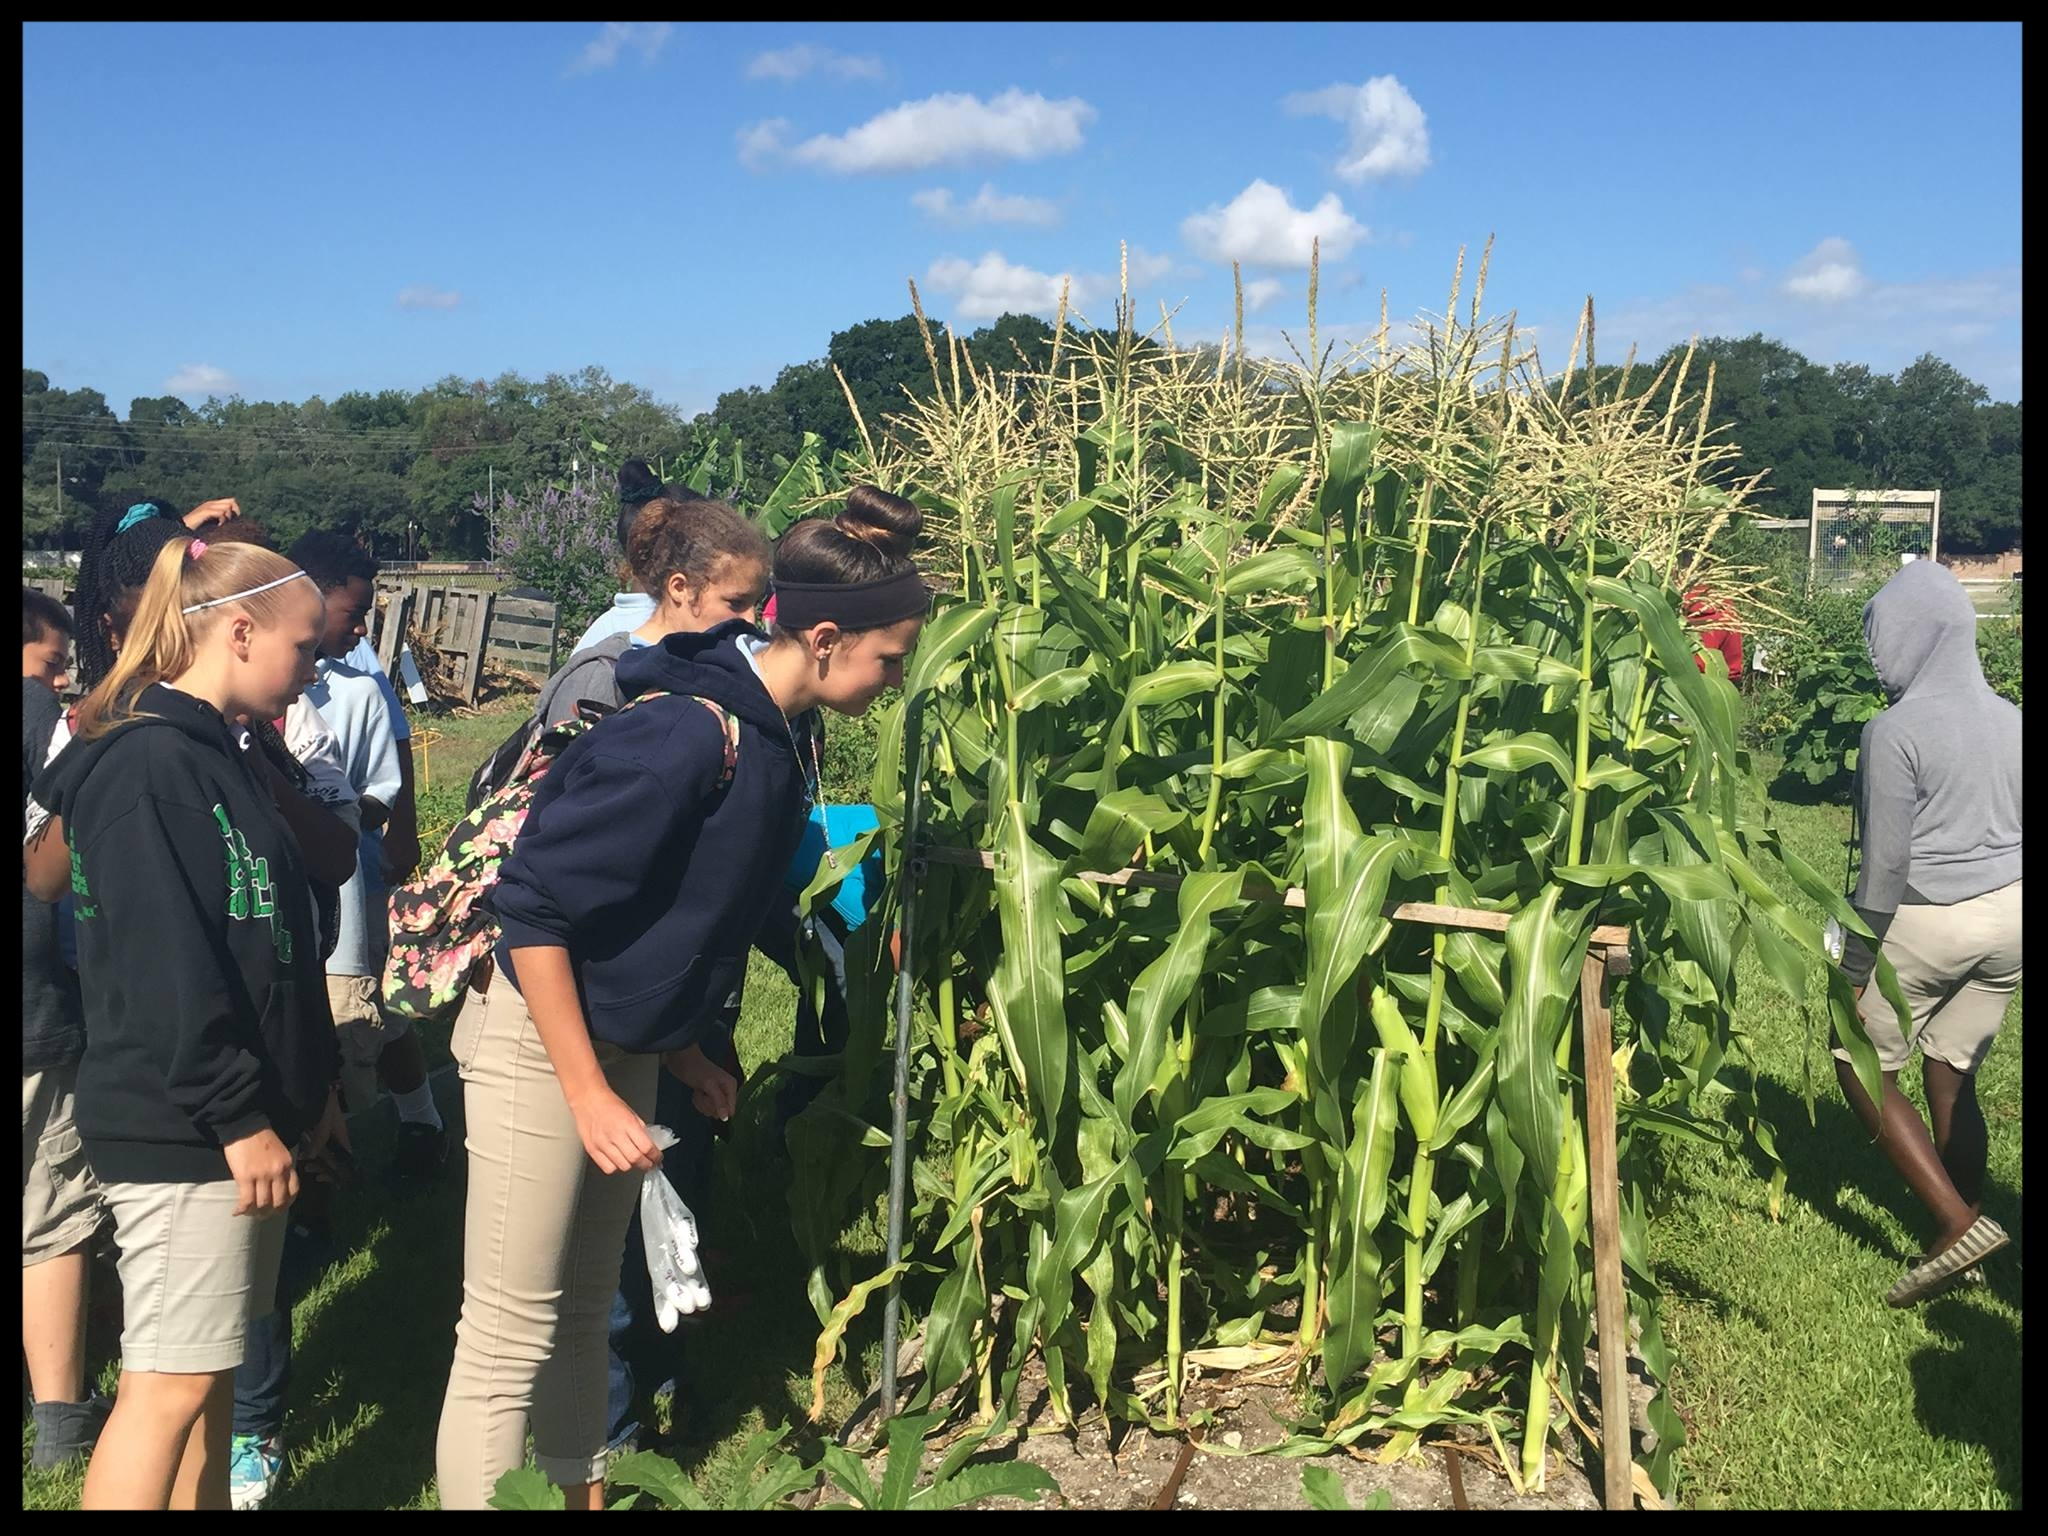 Visit to the garden by Greco students to learn about how corn is pollinated and grows on stalks.